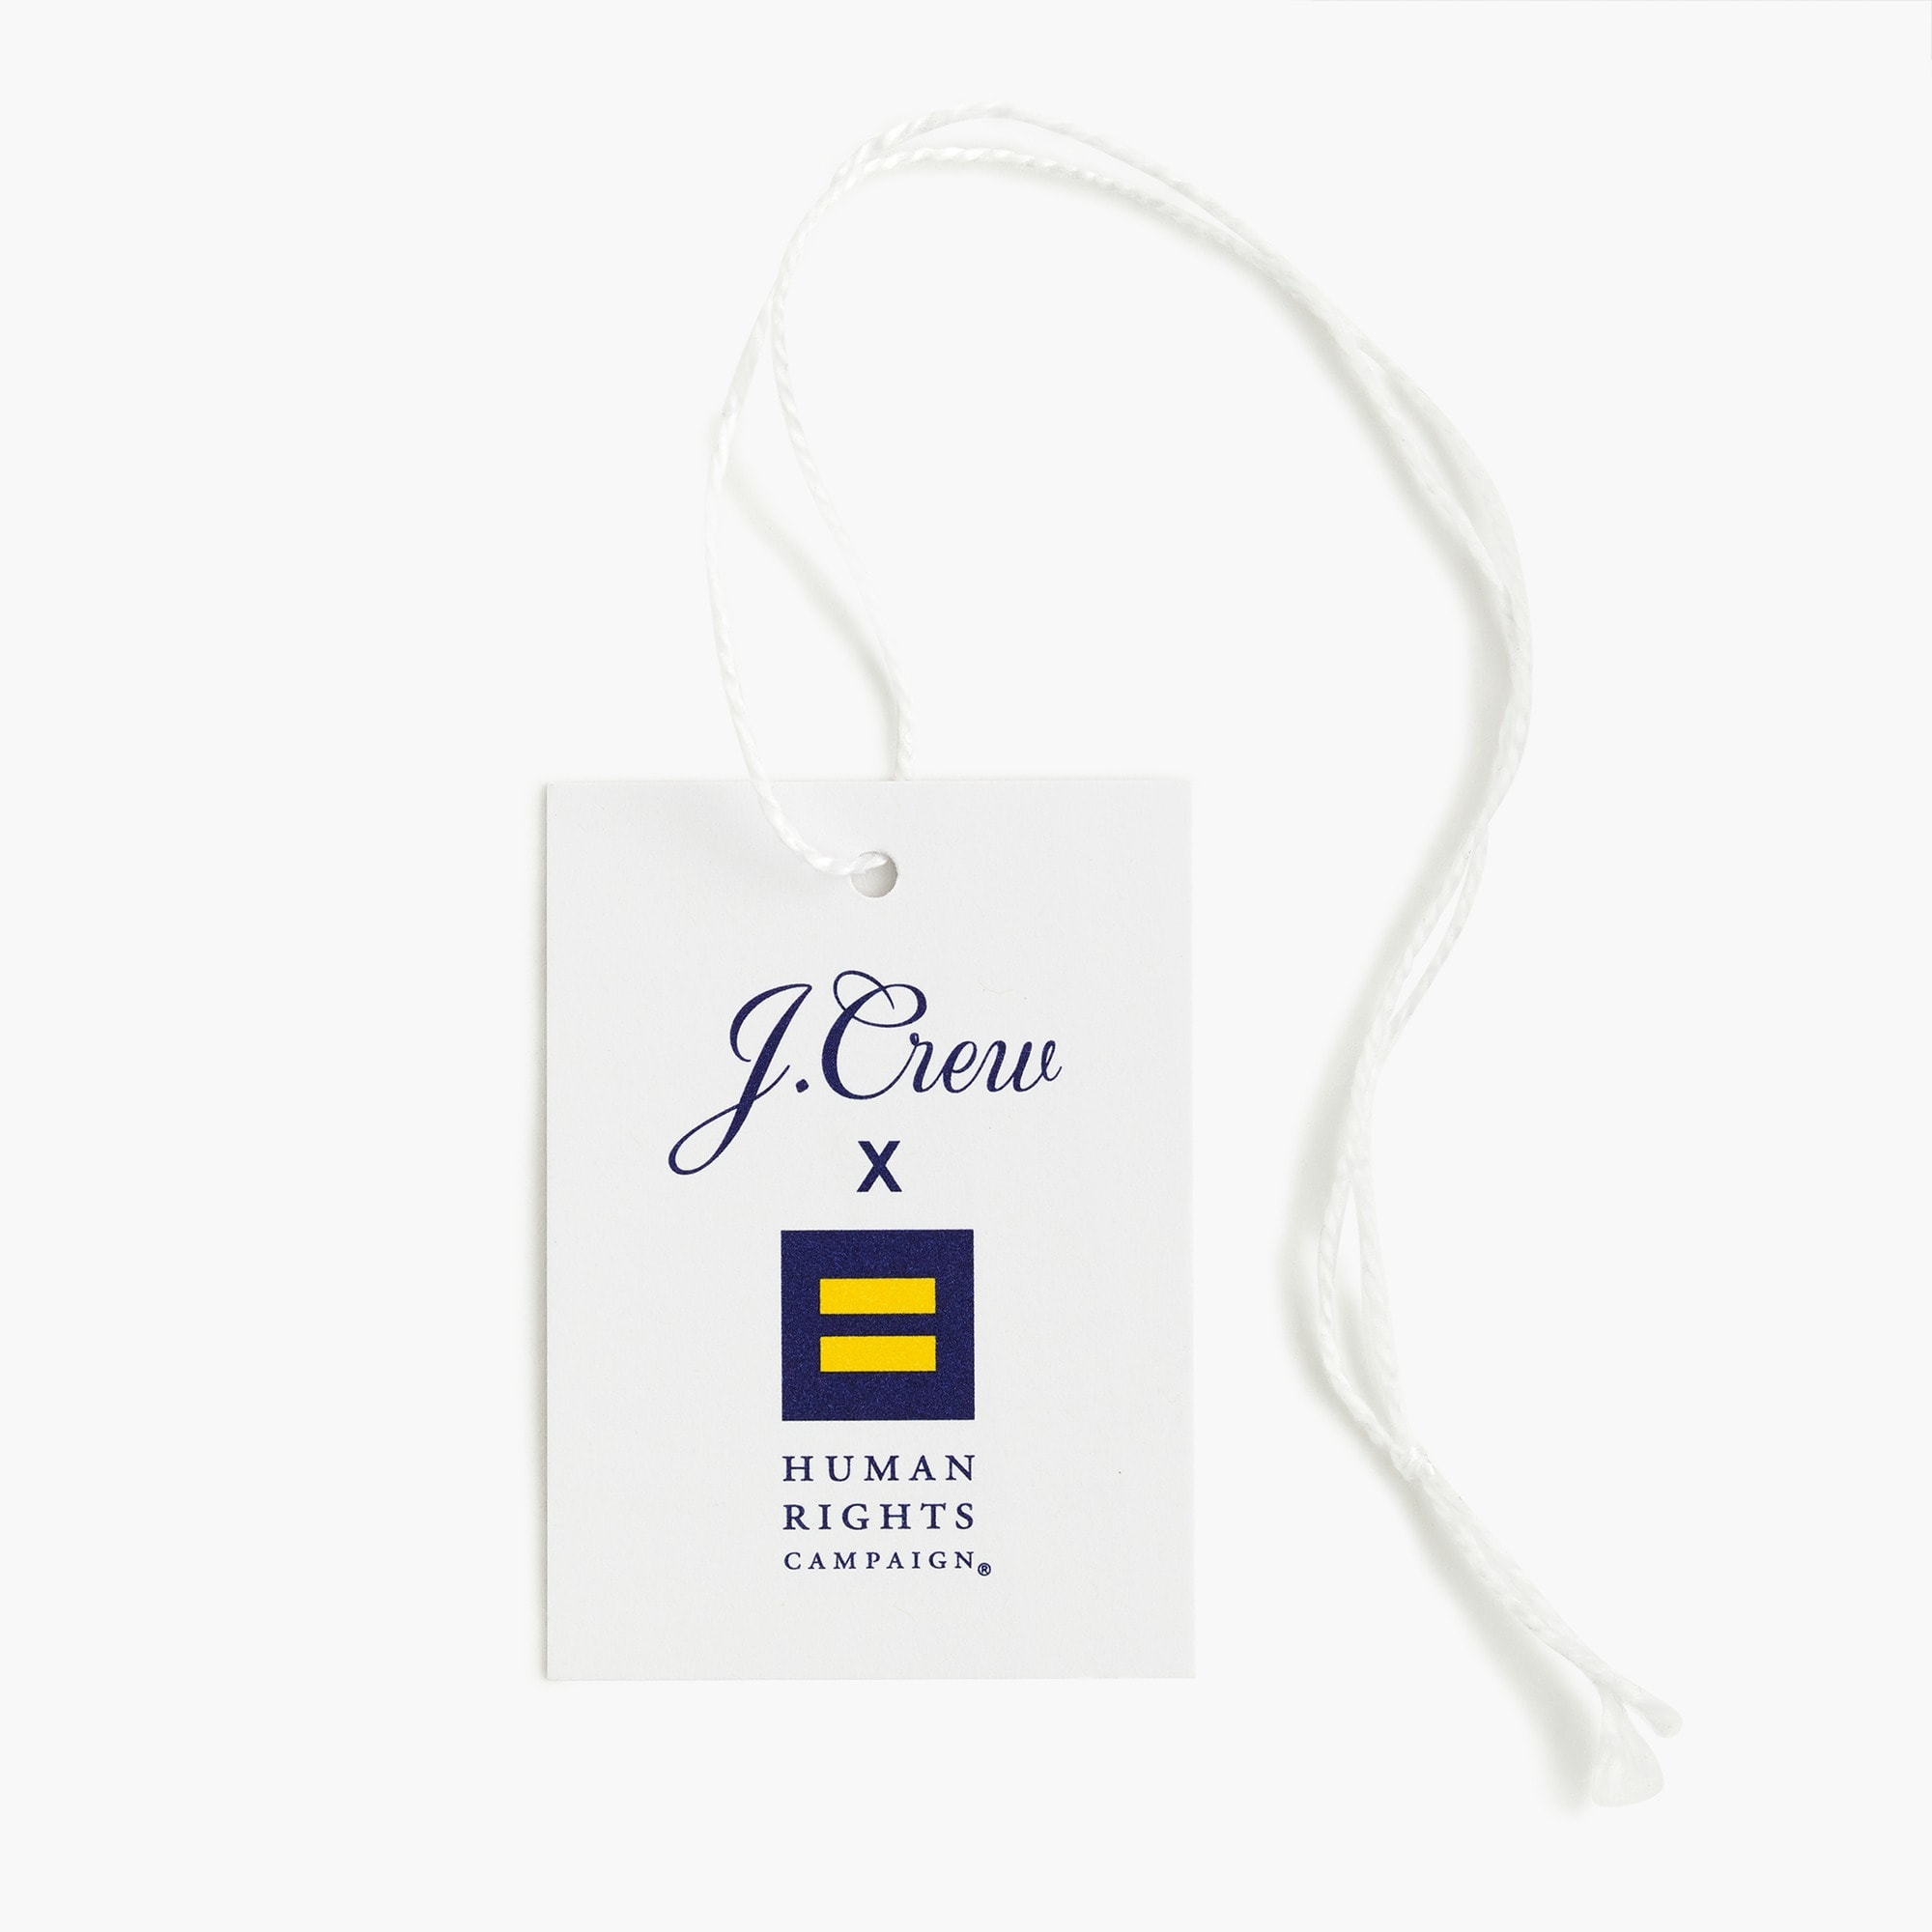 J.Crew X Human Rights Campaign Pride flag socks